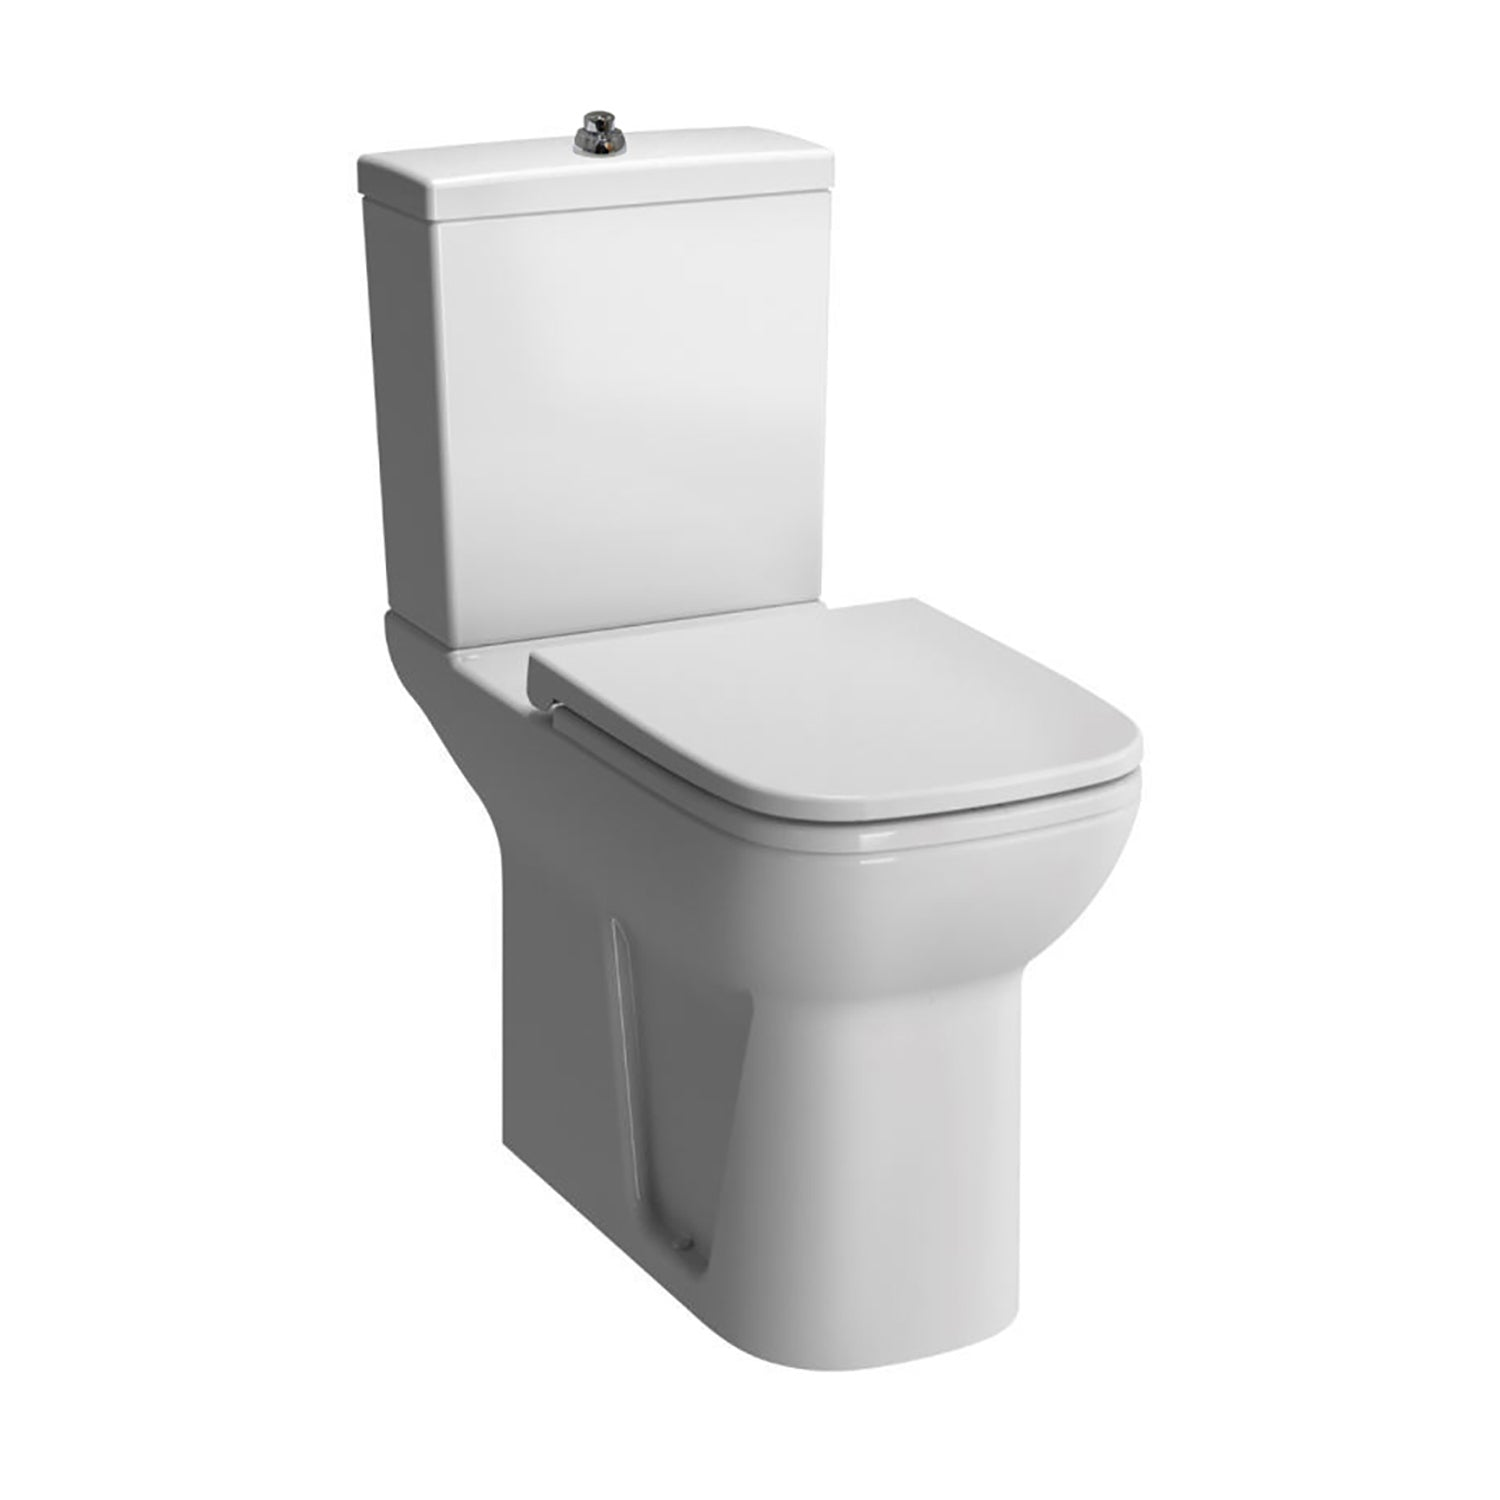 Consilio Comfort Height Close Coupled Toilet with the seat cover and cistern on a white background